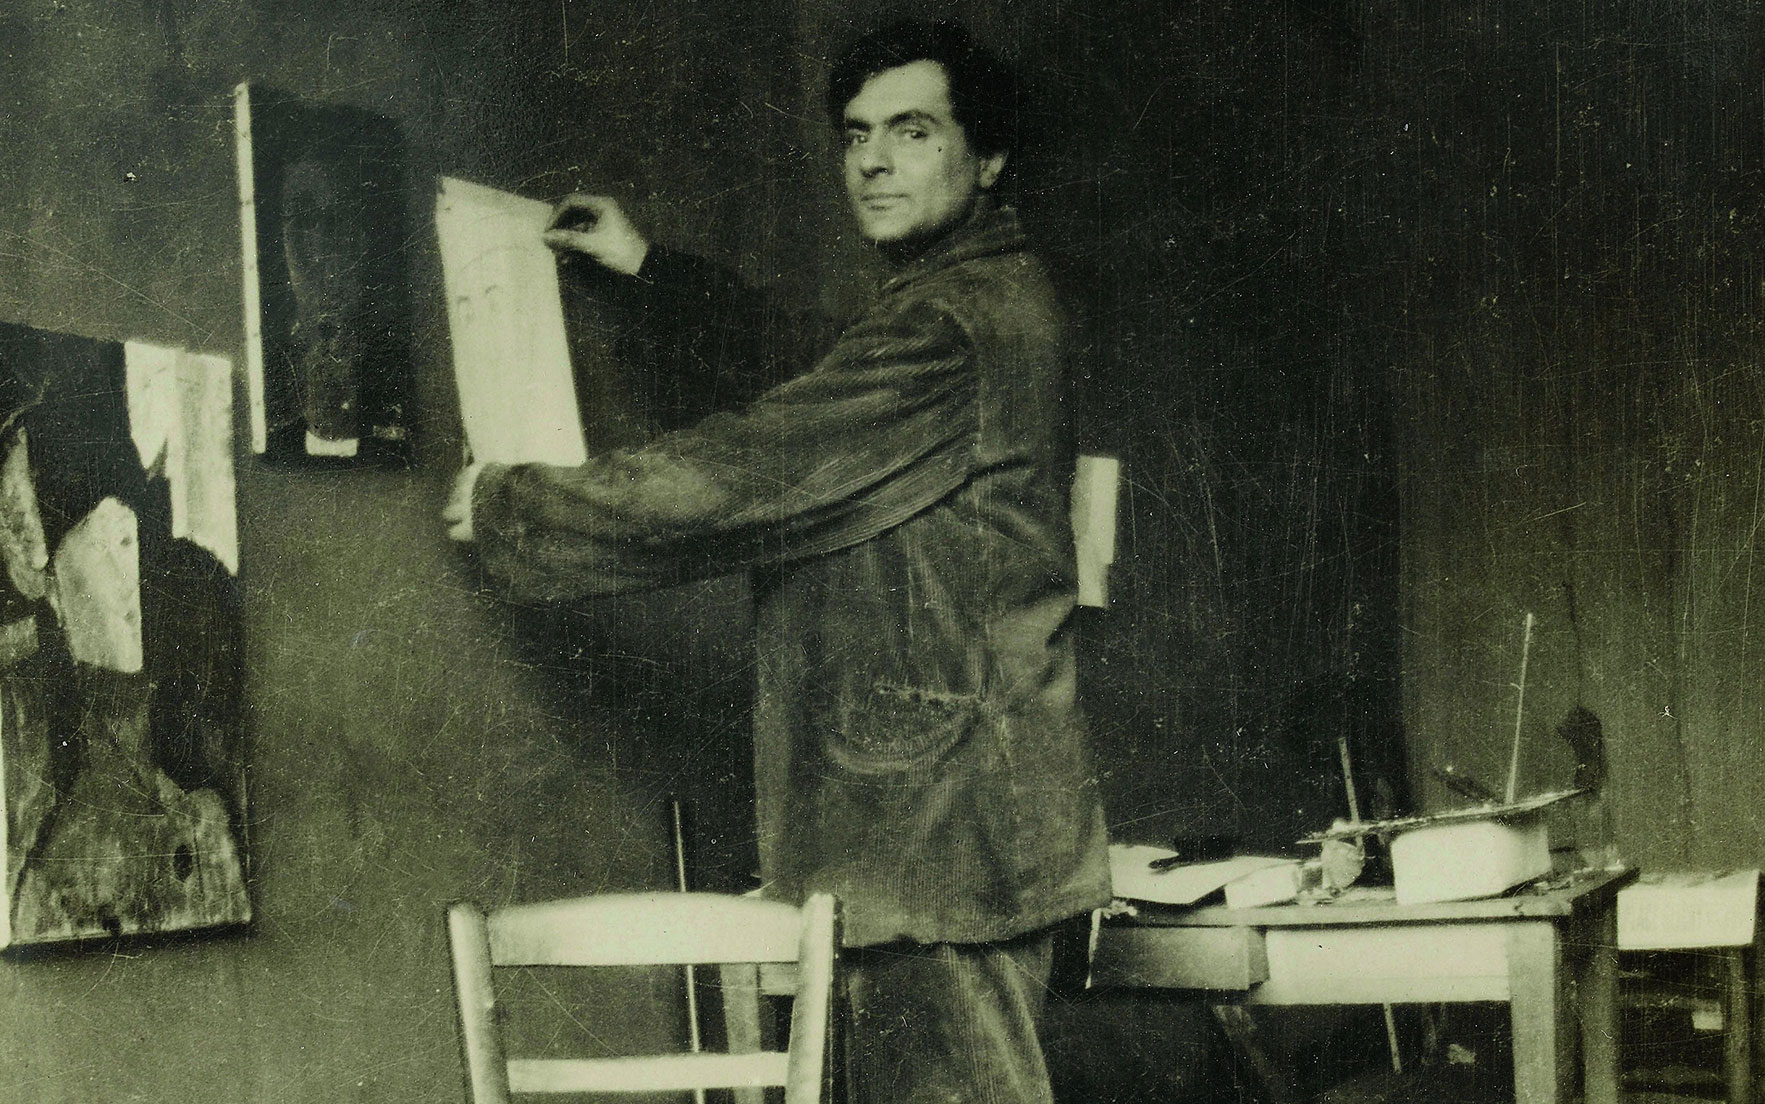 Modigliani in his studio. Photograph by Paul Guillaume, c. 1915 © RMN-Grand Palais (Musée de l'Orangerie) I Archives Alain Bouret, image Dominique Couto